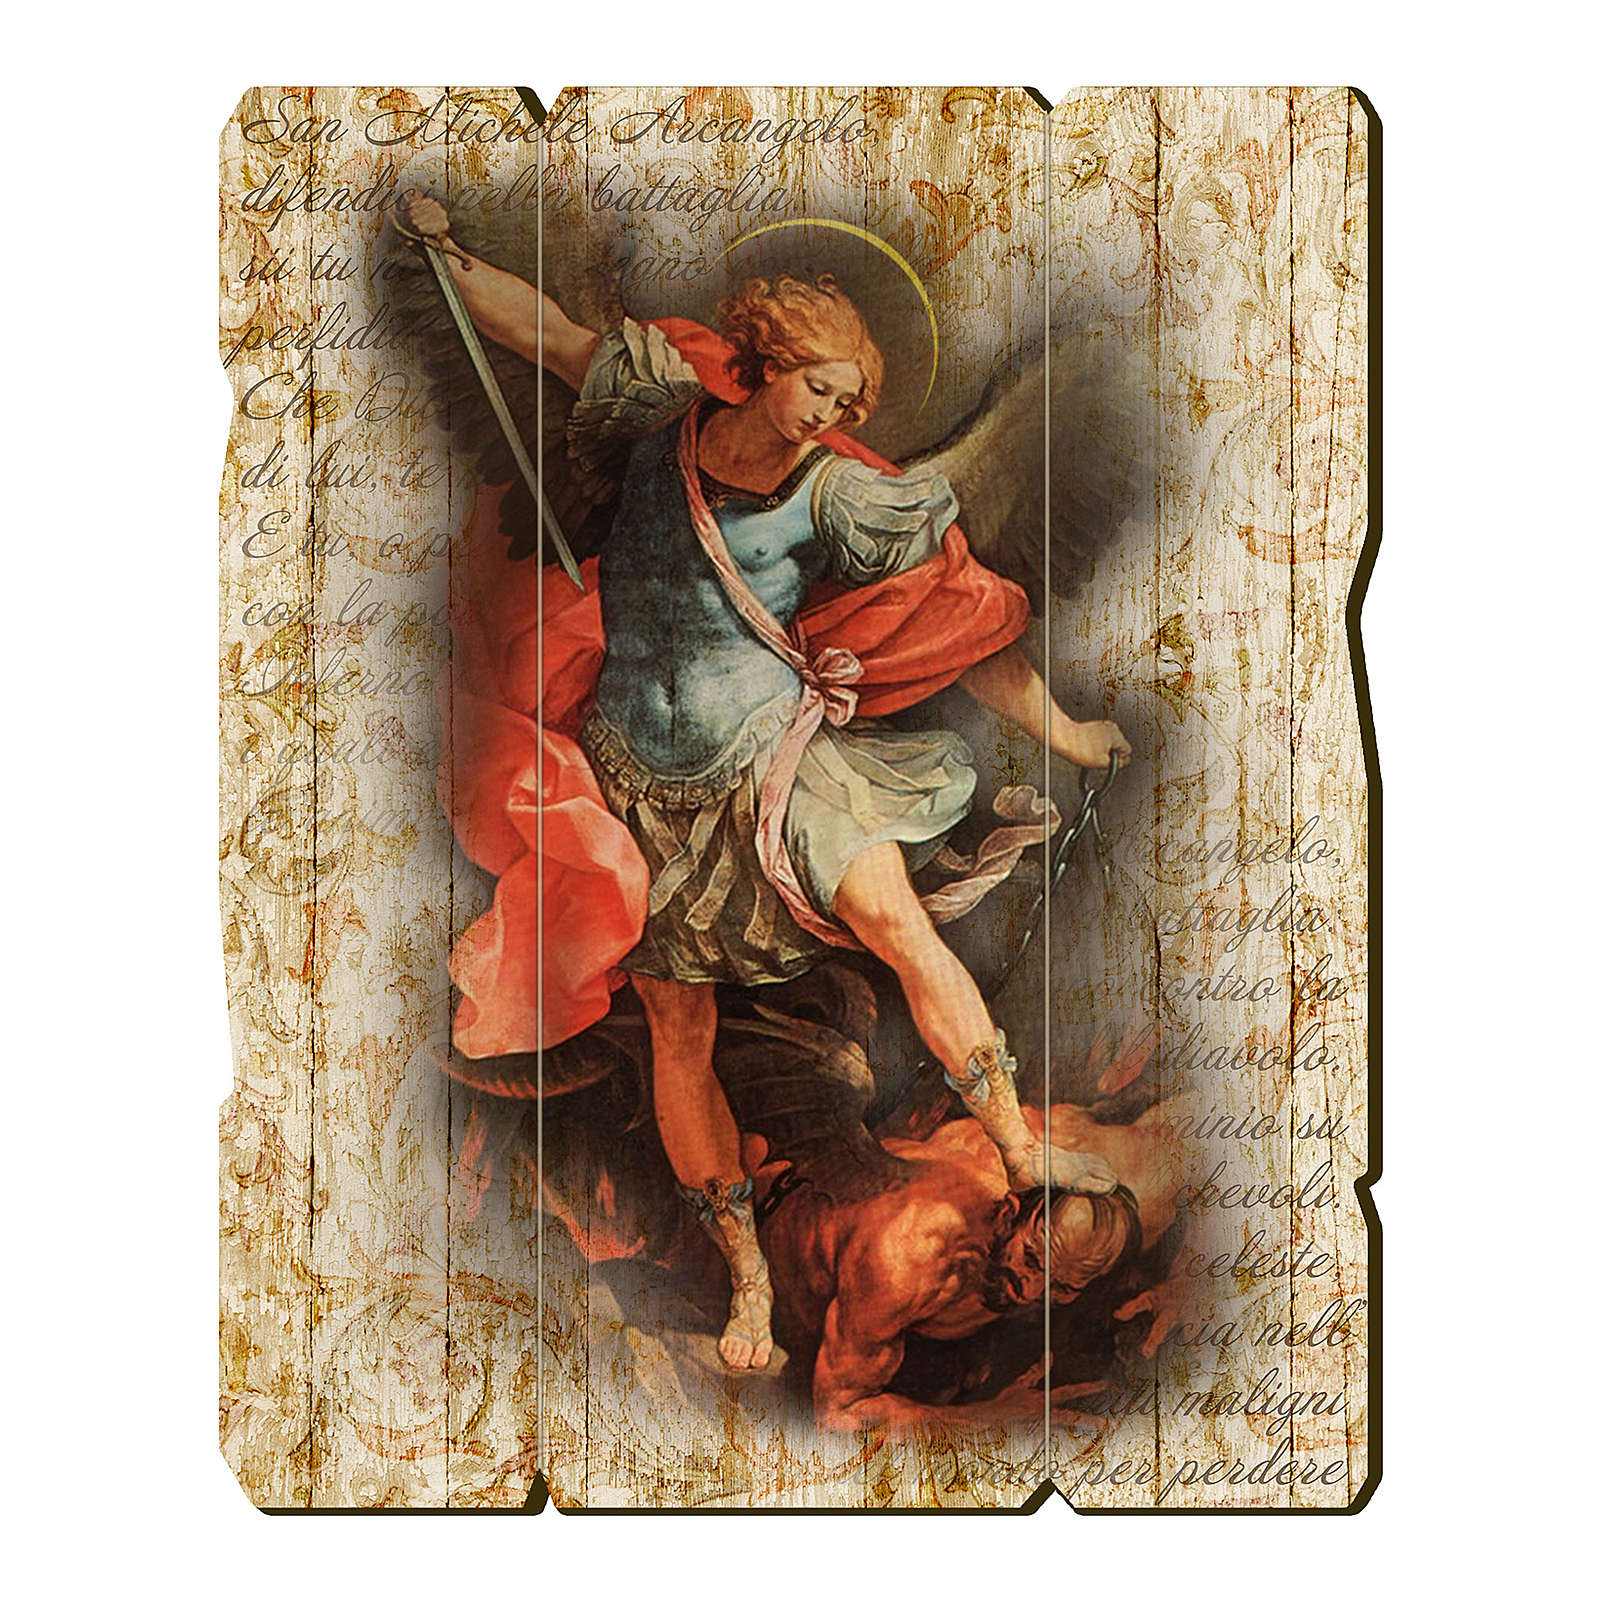 Saint Archangel Micheal painting in moulded wood with hook on the back 3